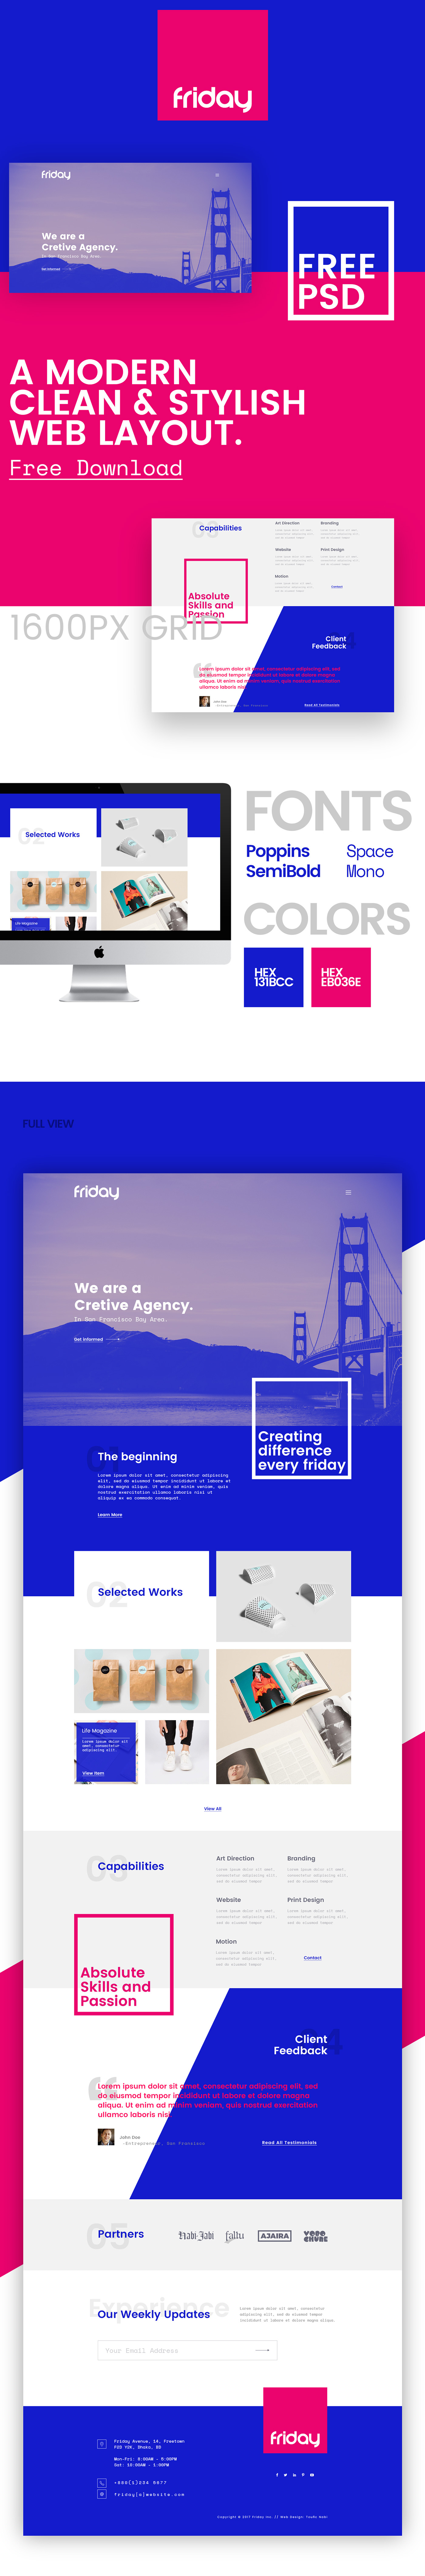 web layout free freebie psd moden clean stylish blue Catchy different